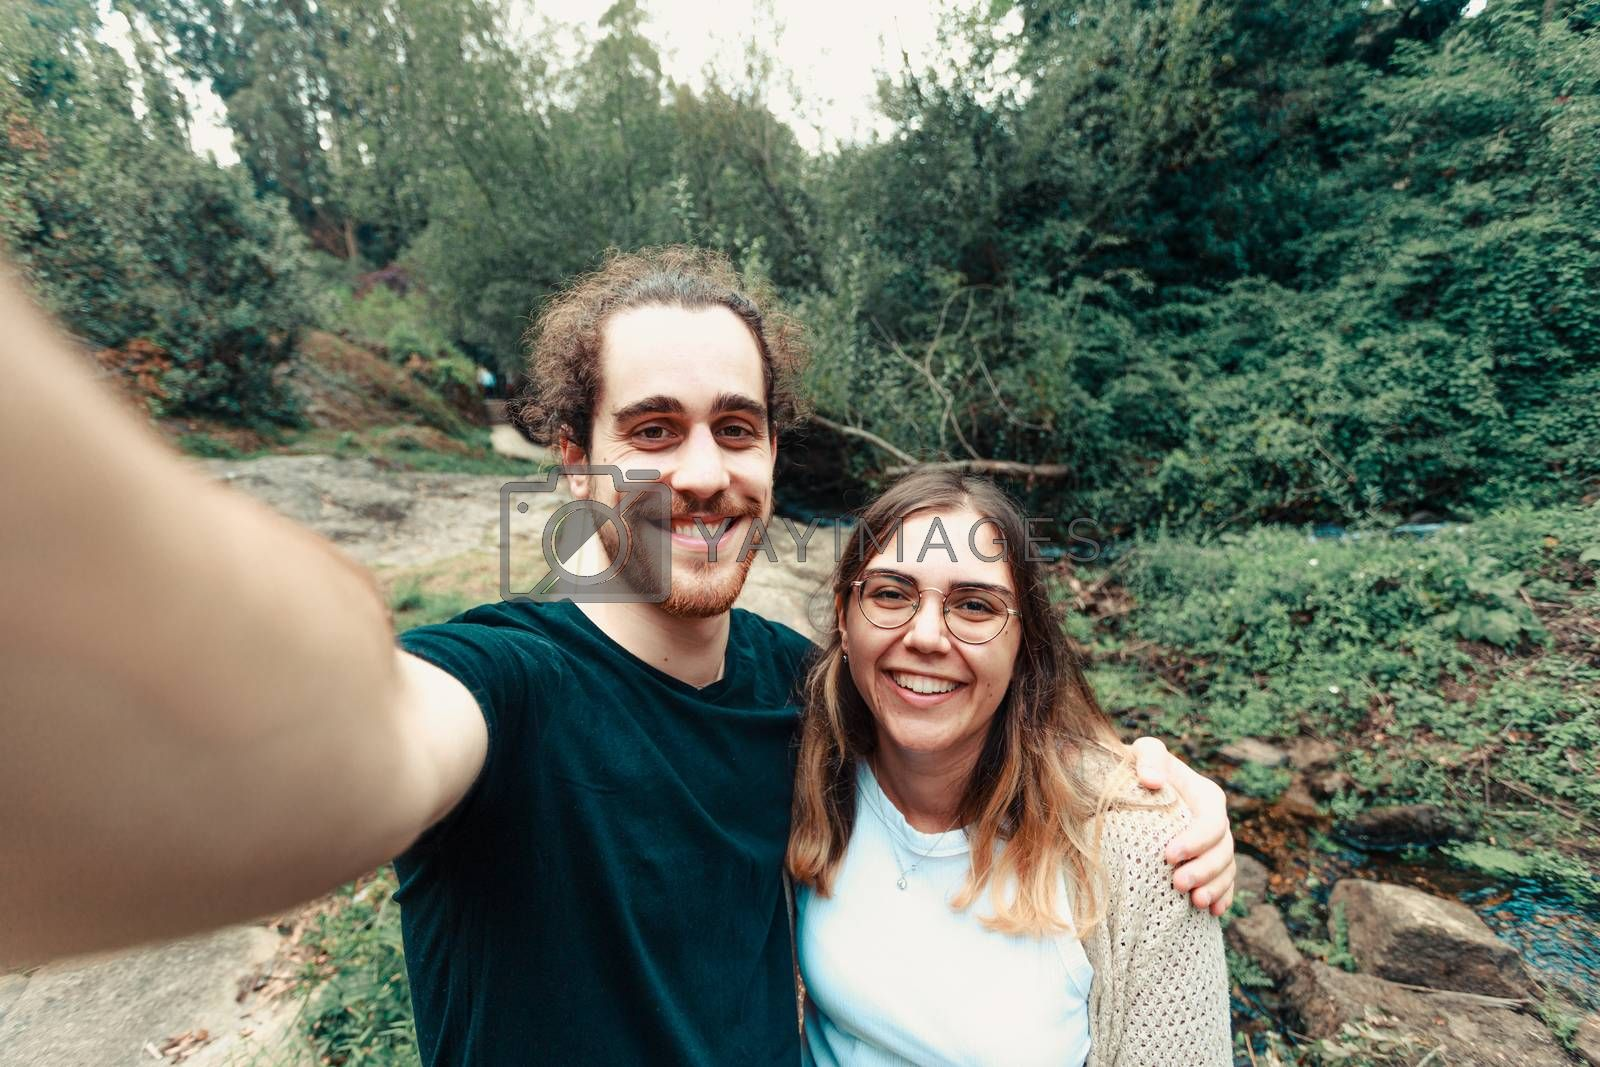 A young couple taking a selfie in the forest while smiling